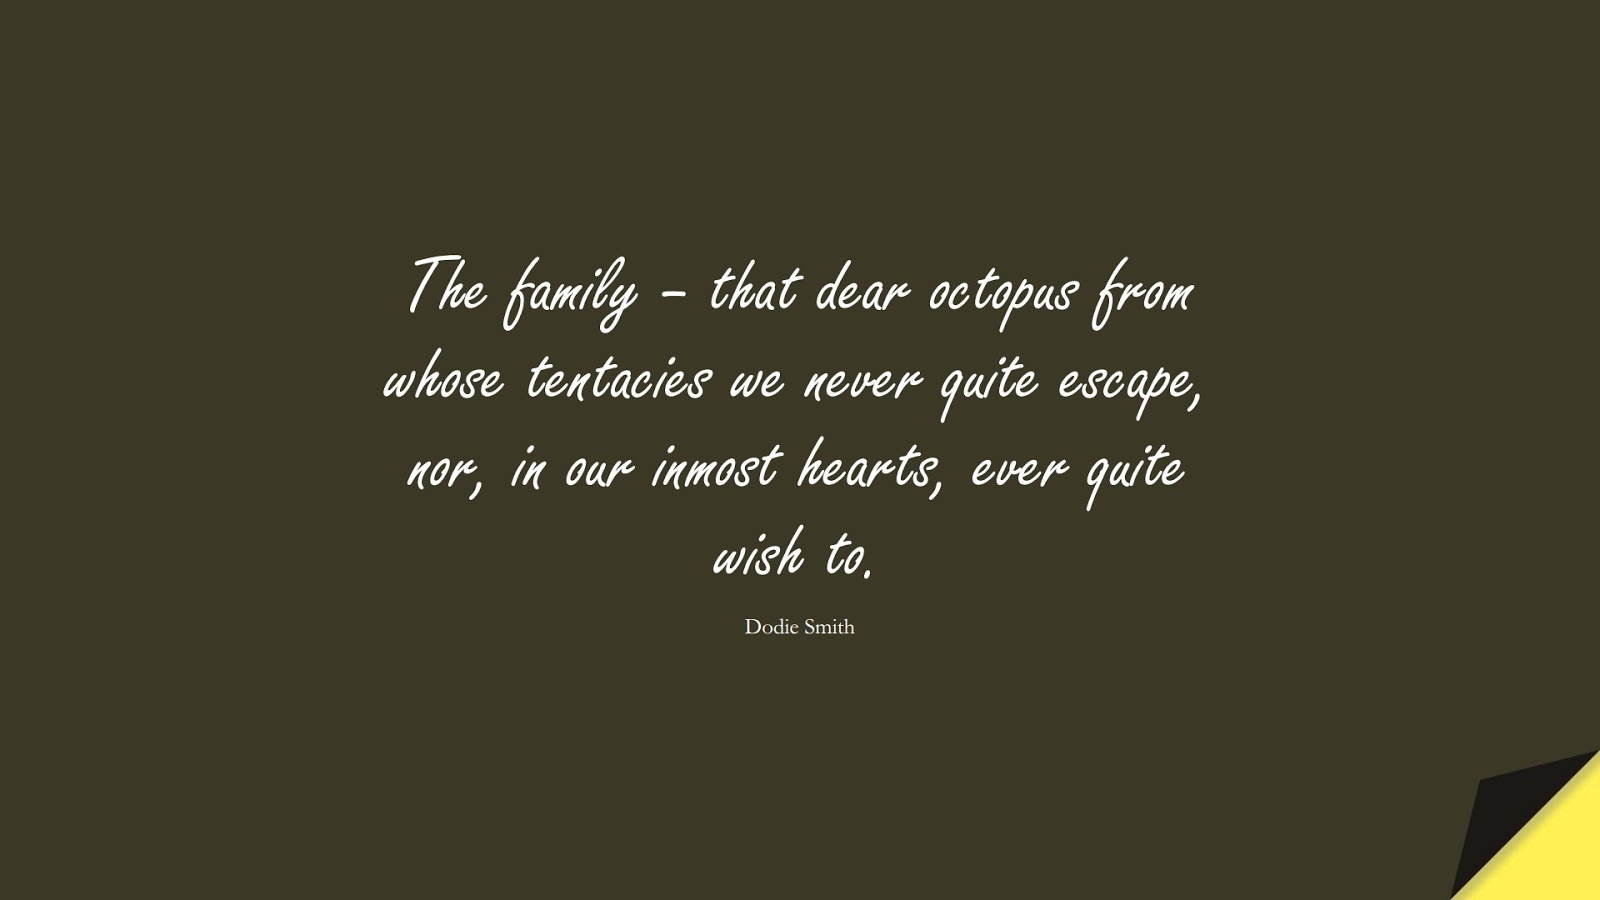 The family – that dear octopus from whose tentacies we never quite escape, nor, in our inmost hearts, ever quite wish to. (Dodie Smith);  #FamilyQuotes